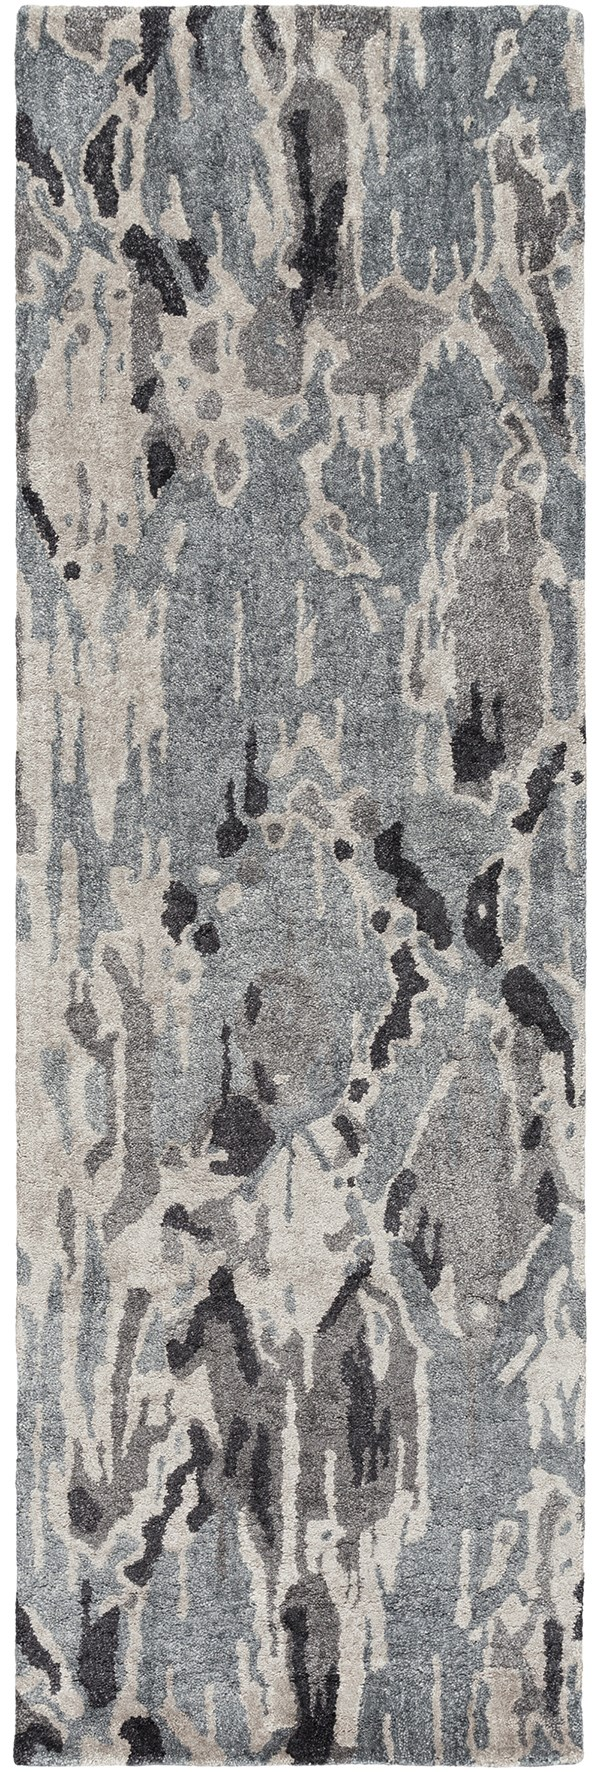 Charcoal, Black, Taupe Contemporary / Modern Area Rug